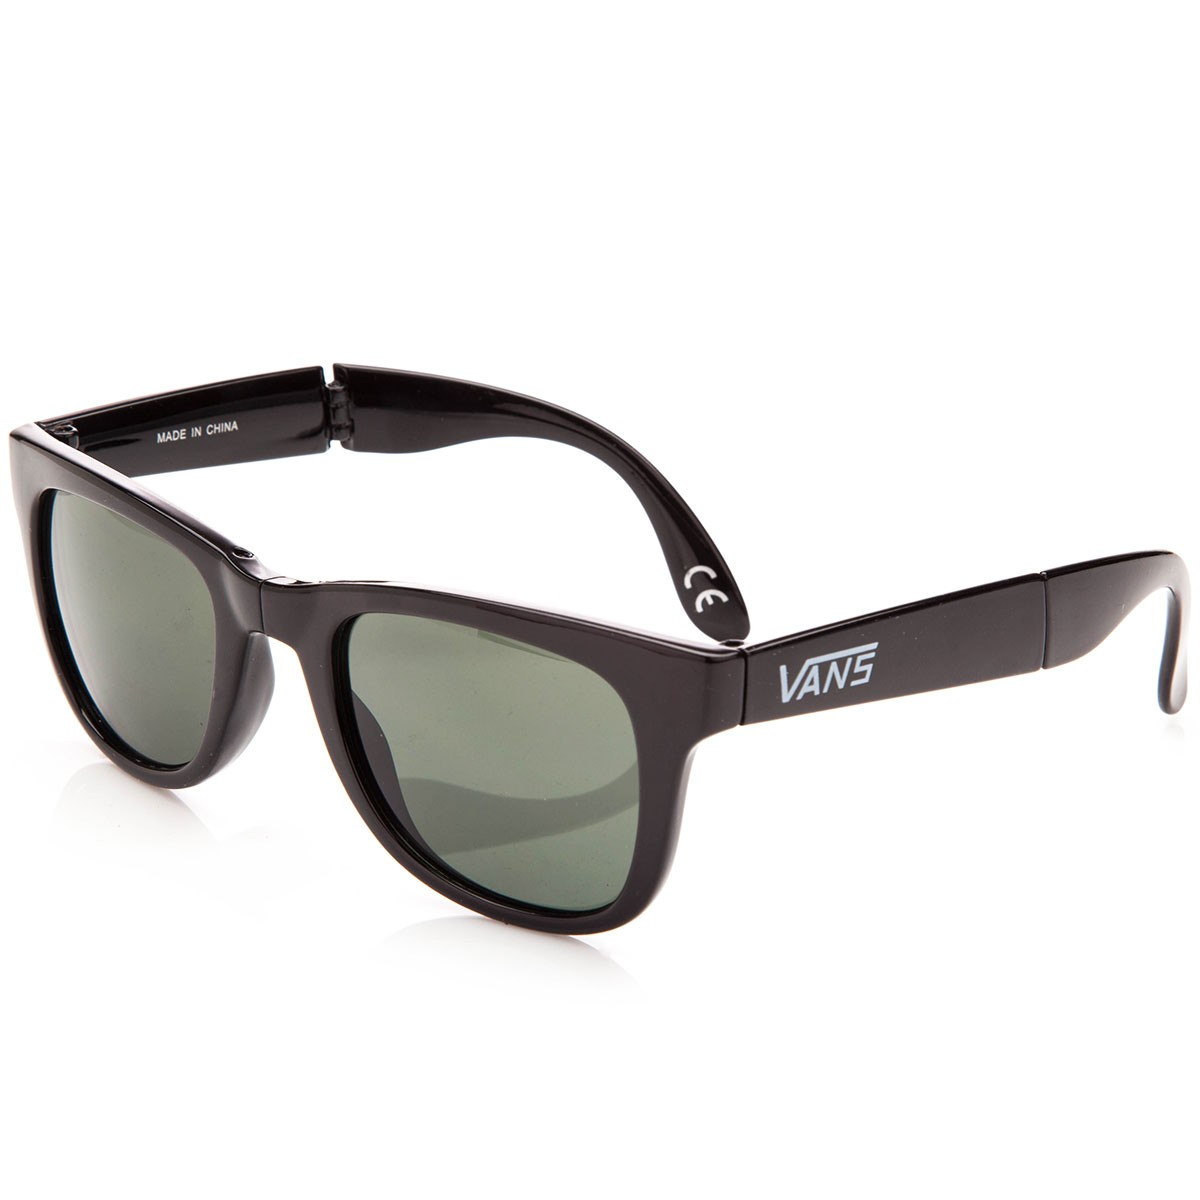 vans-foldable-spicoli-shades-sunglasses-black-gloss-1.1506662657.jpg 1ee7ceca02